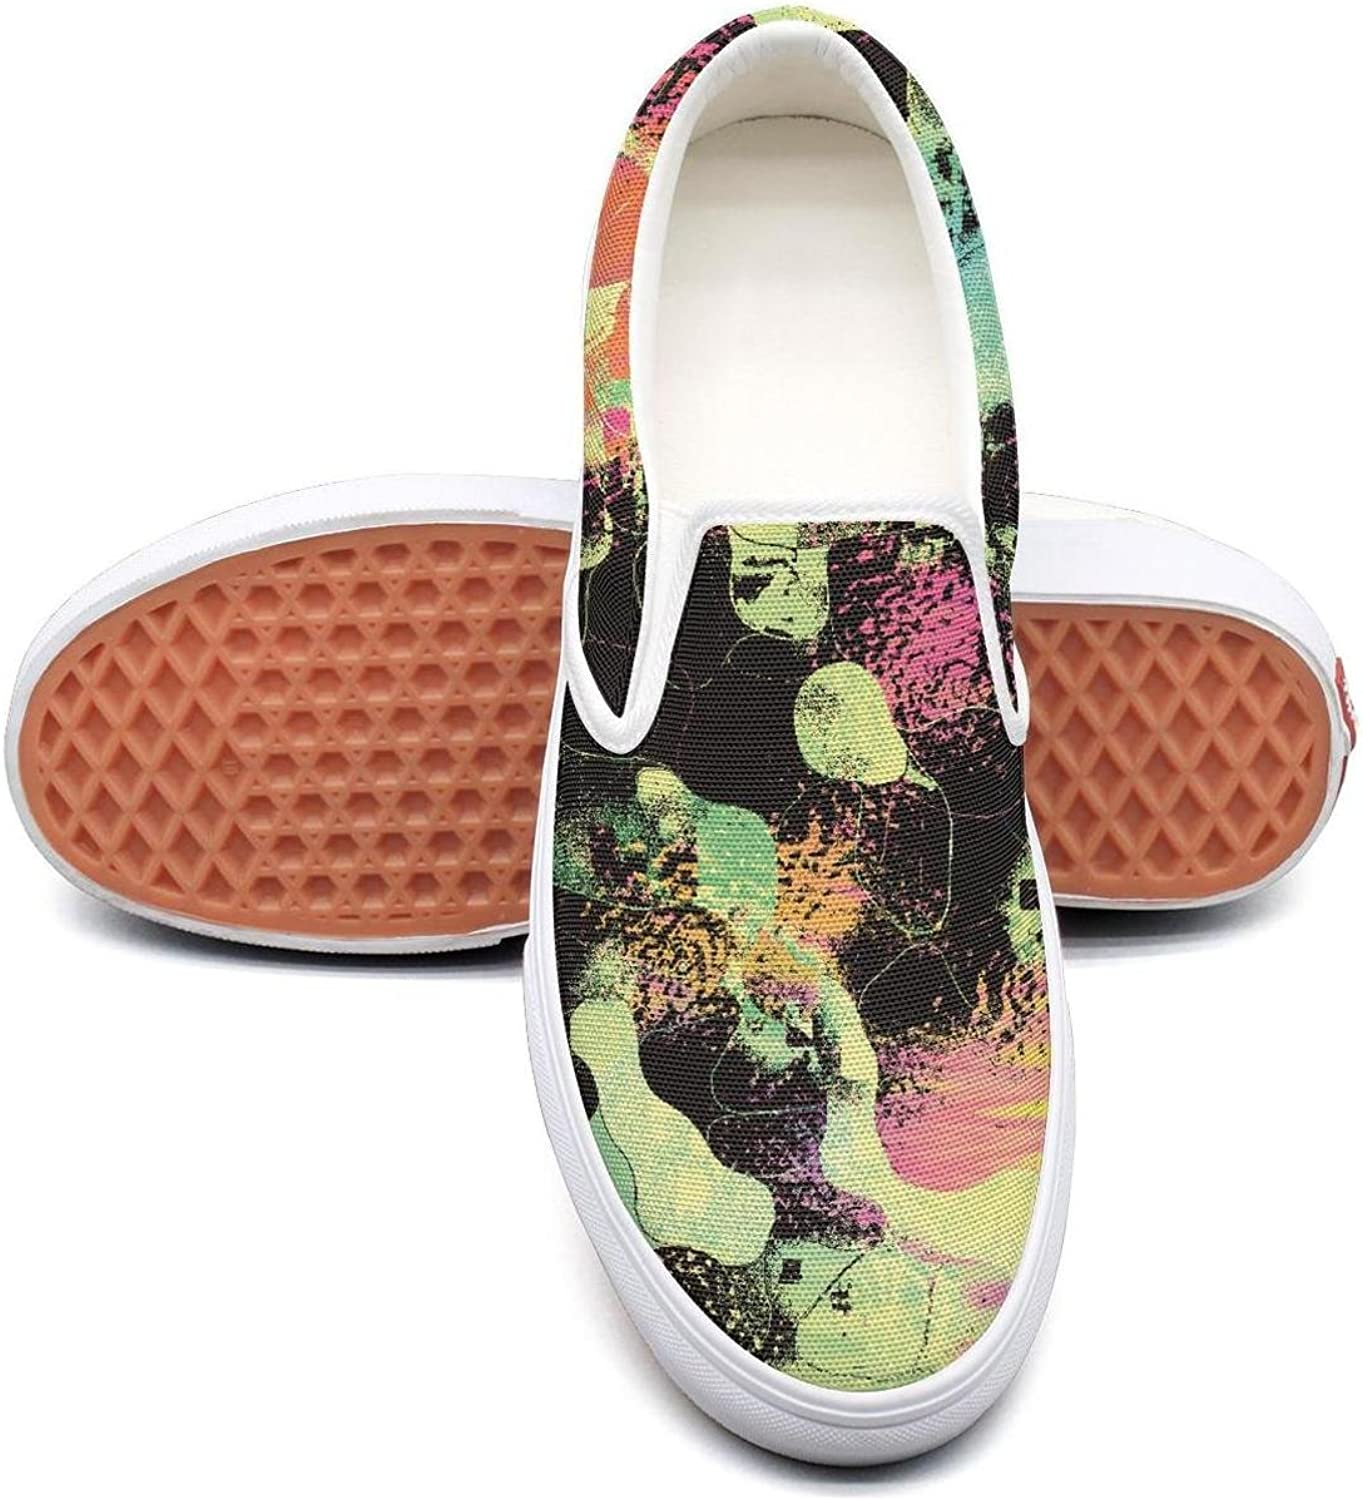 Lalige LSD Trippy Psychedelic Mirror Women Comfortable Canvas Slip-ONS Travel shoes